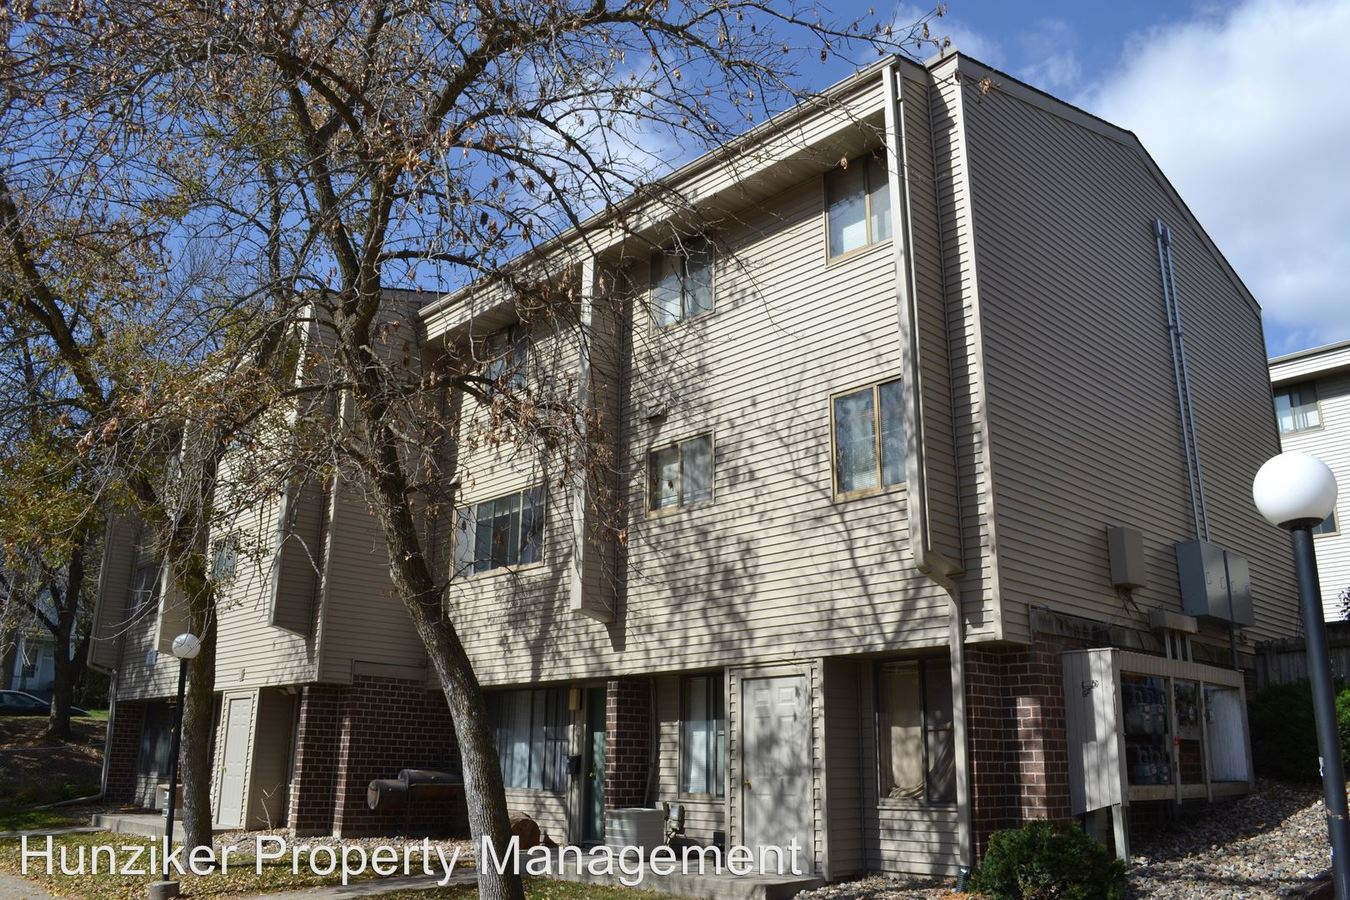 3 Bedrooms 1 Bathroom Apartment for rent at 212 S. Hyland in Ames, IA